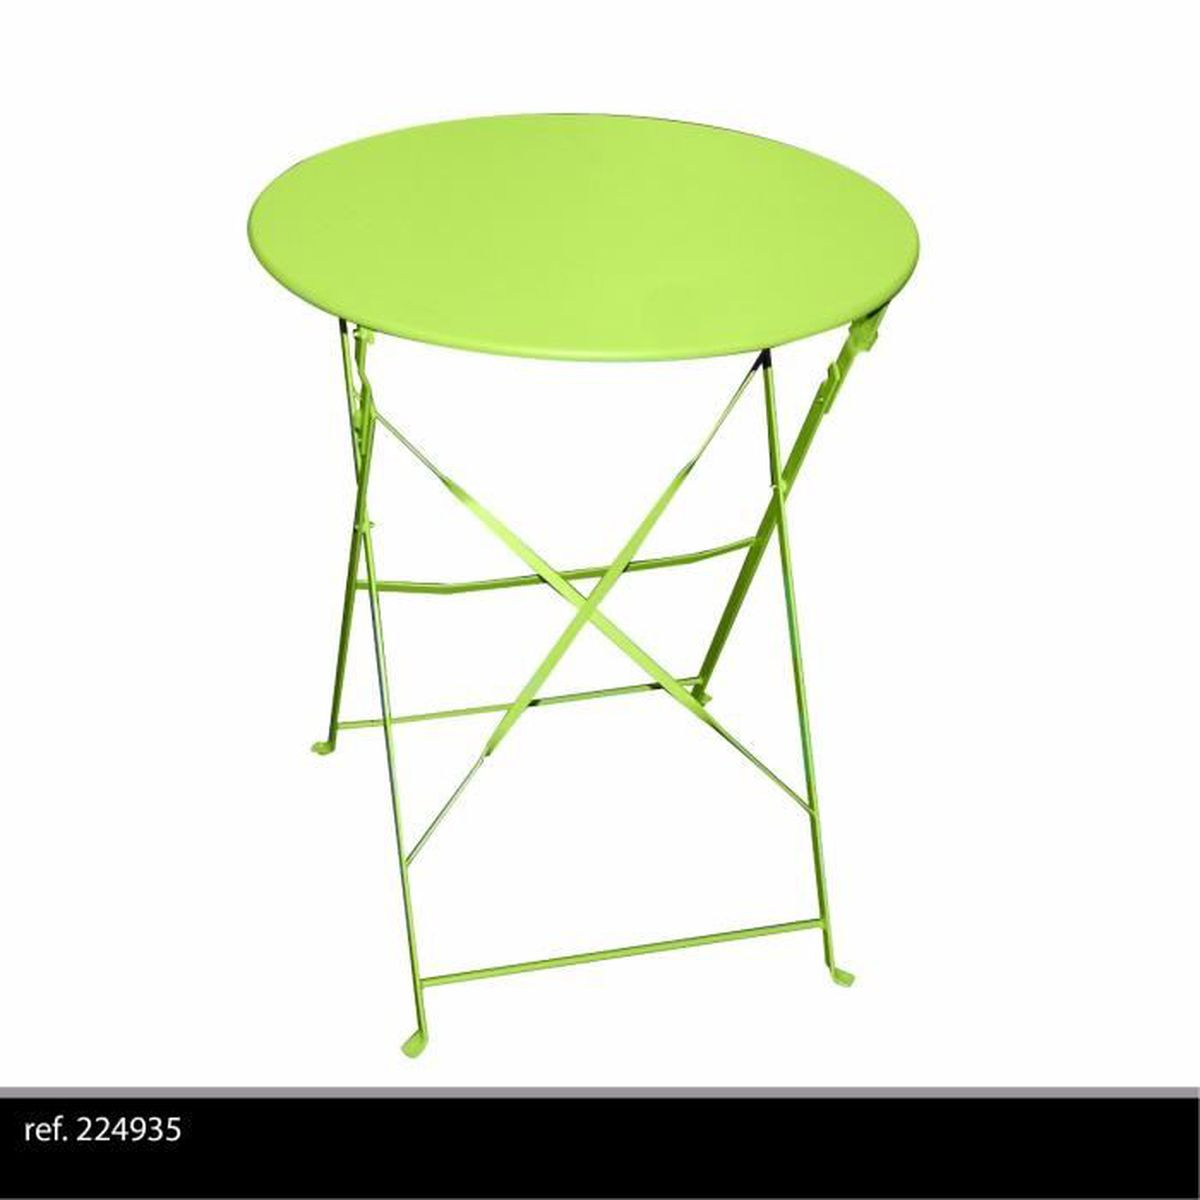 table ronde de jardin en metal bistro cafe salon pliante verte pliable exterieur achat vente. Black Bedroom Furniture Sets. Home Design Ideas